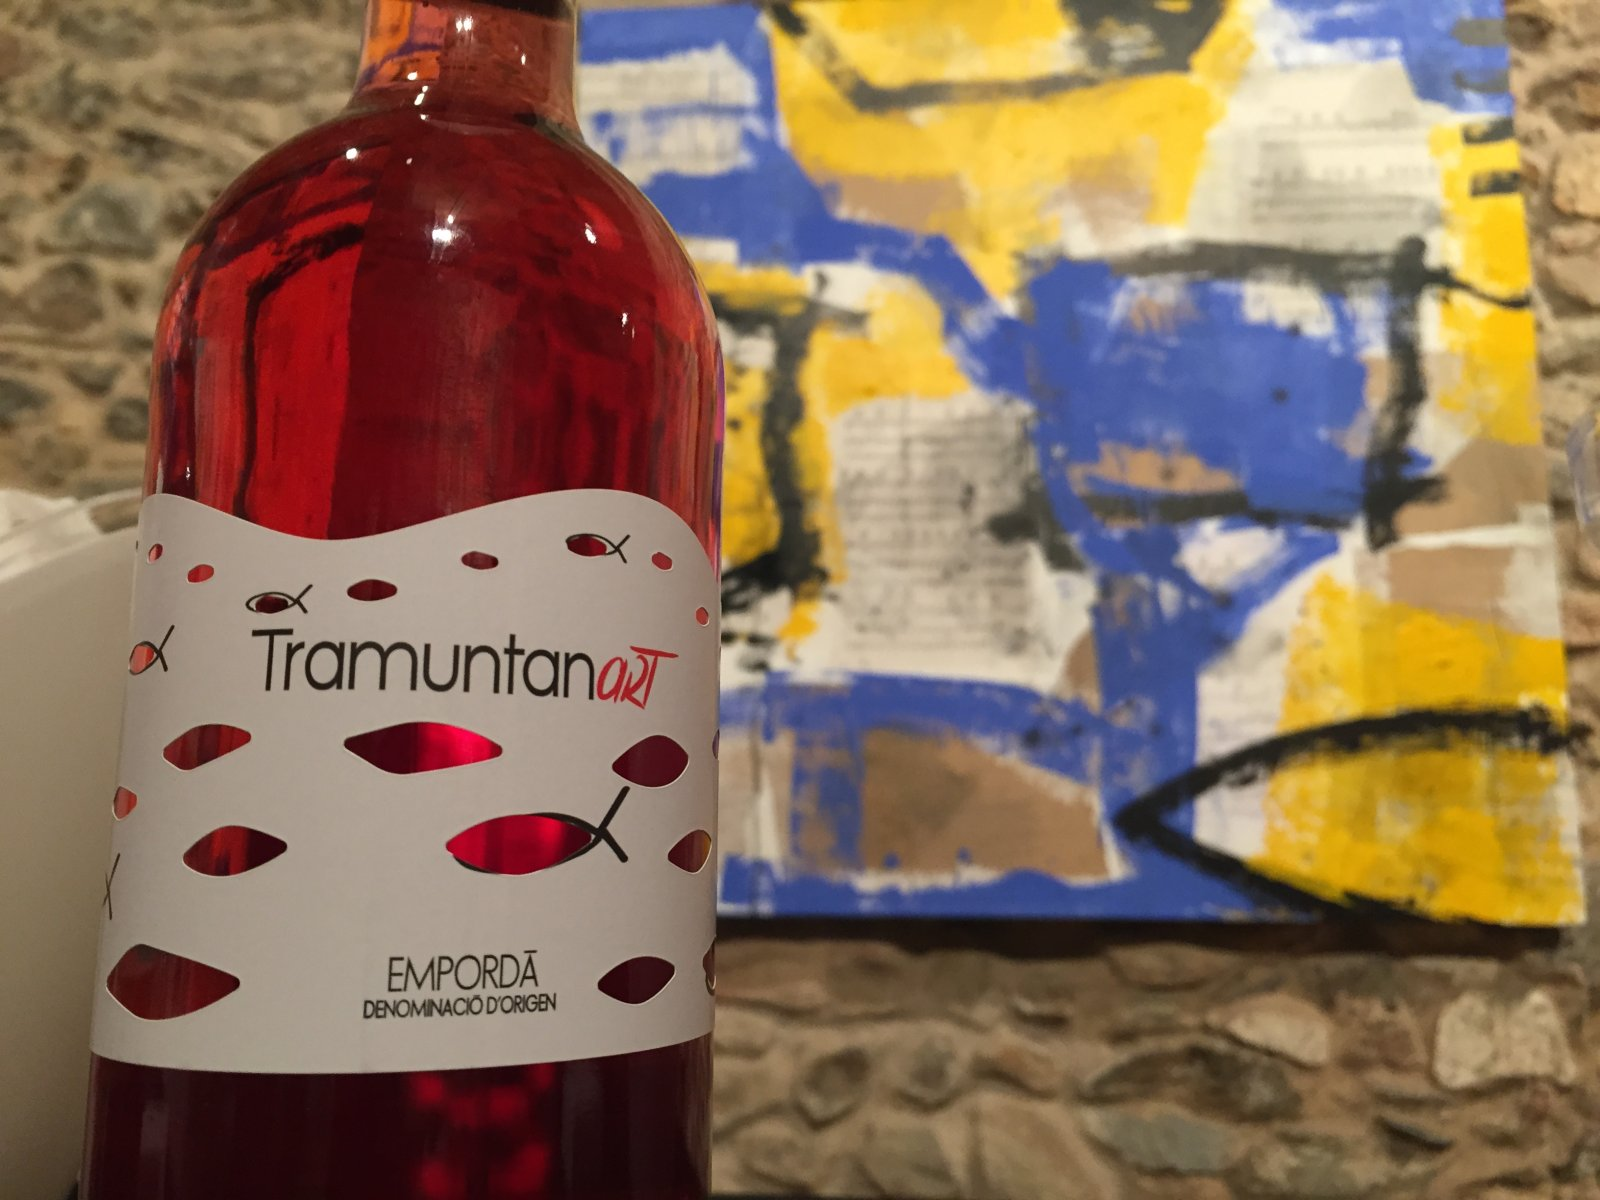 Photo Gallery: Cooperativa Garriguella Tramuntanart wine launch